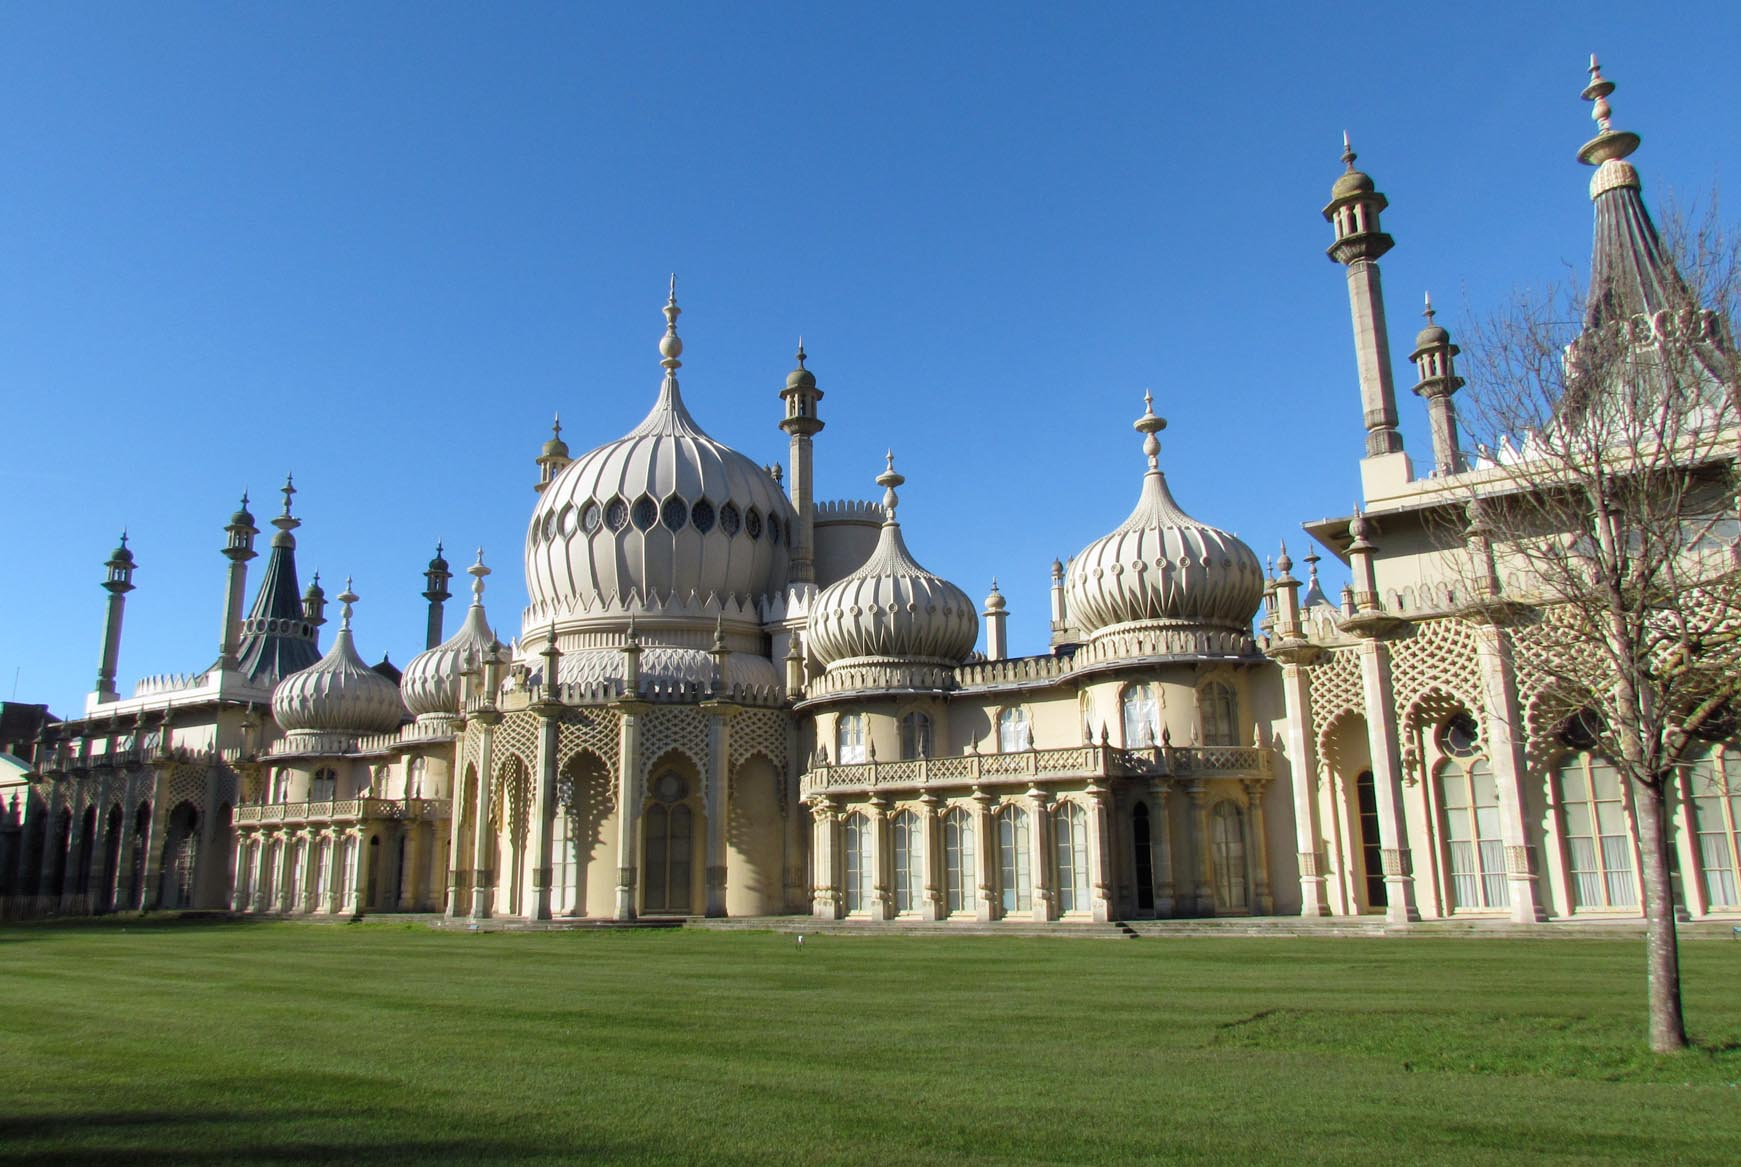 The royal pavilion and environs brighton 1926 britain for The brighton